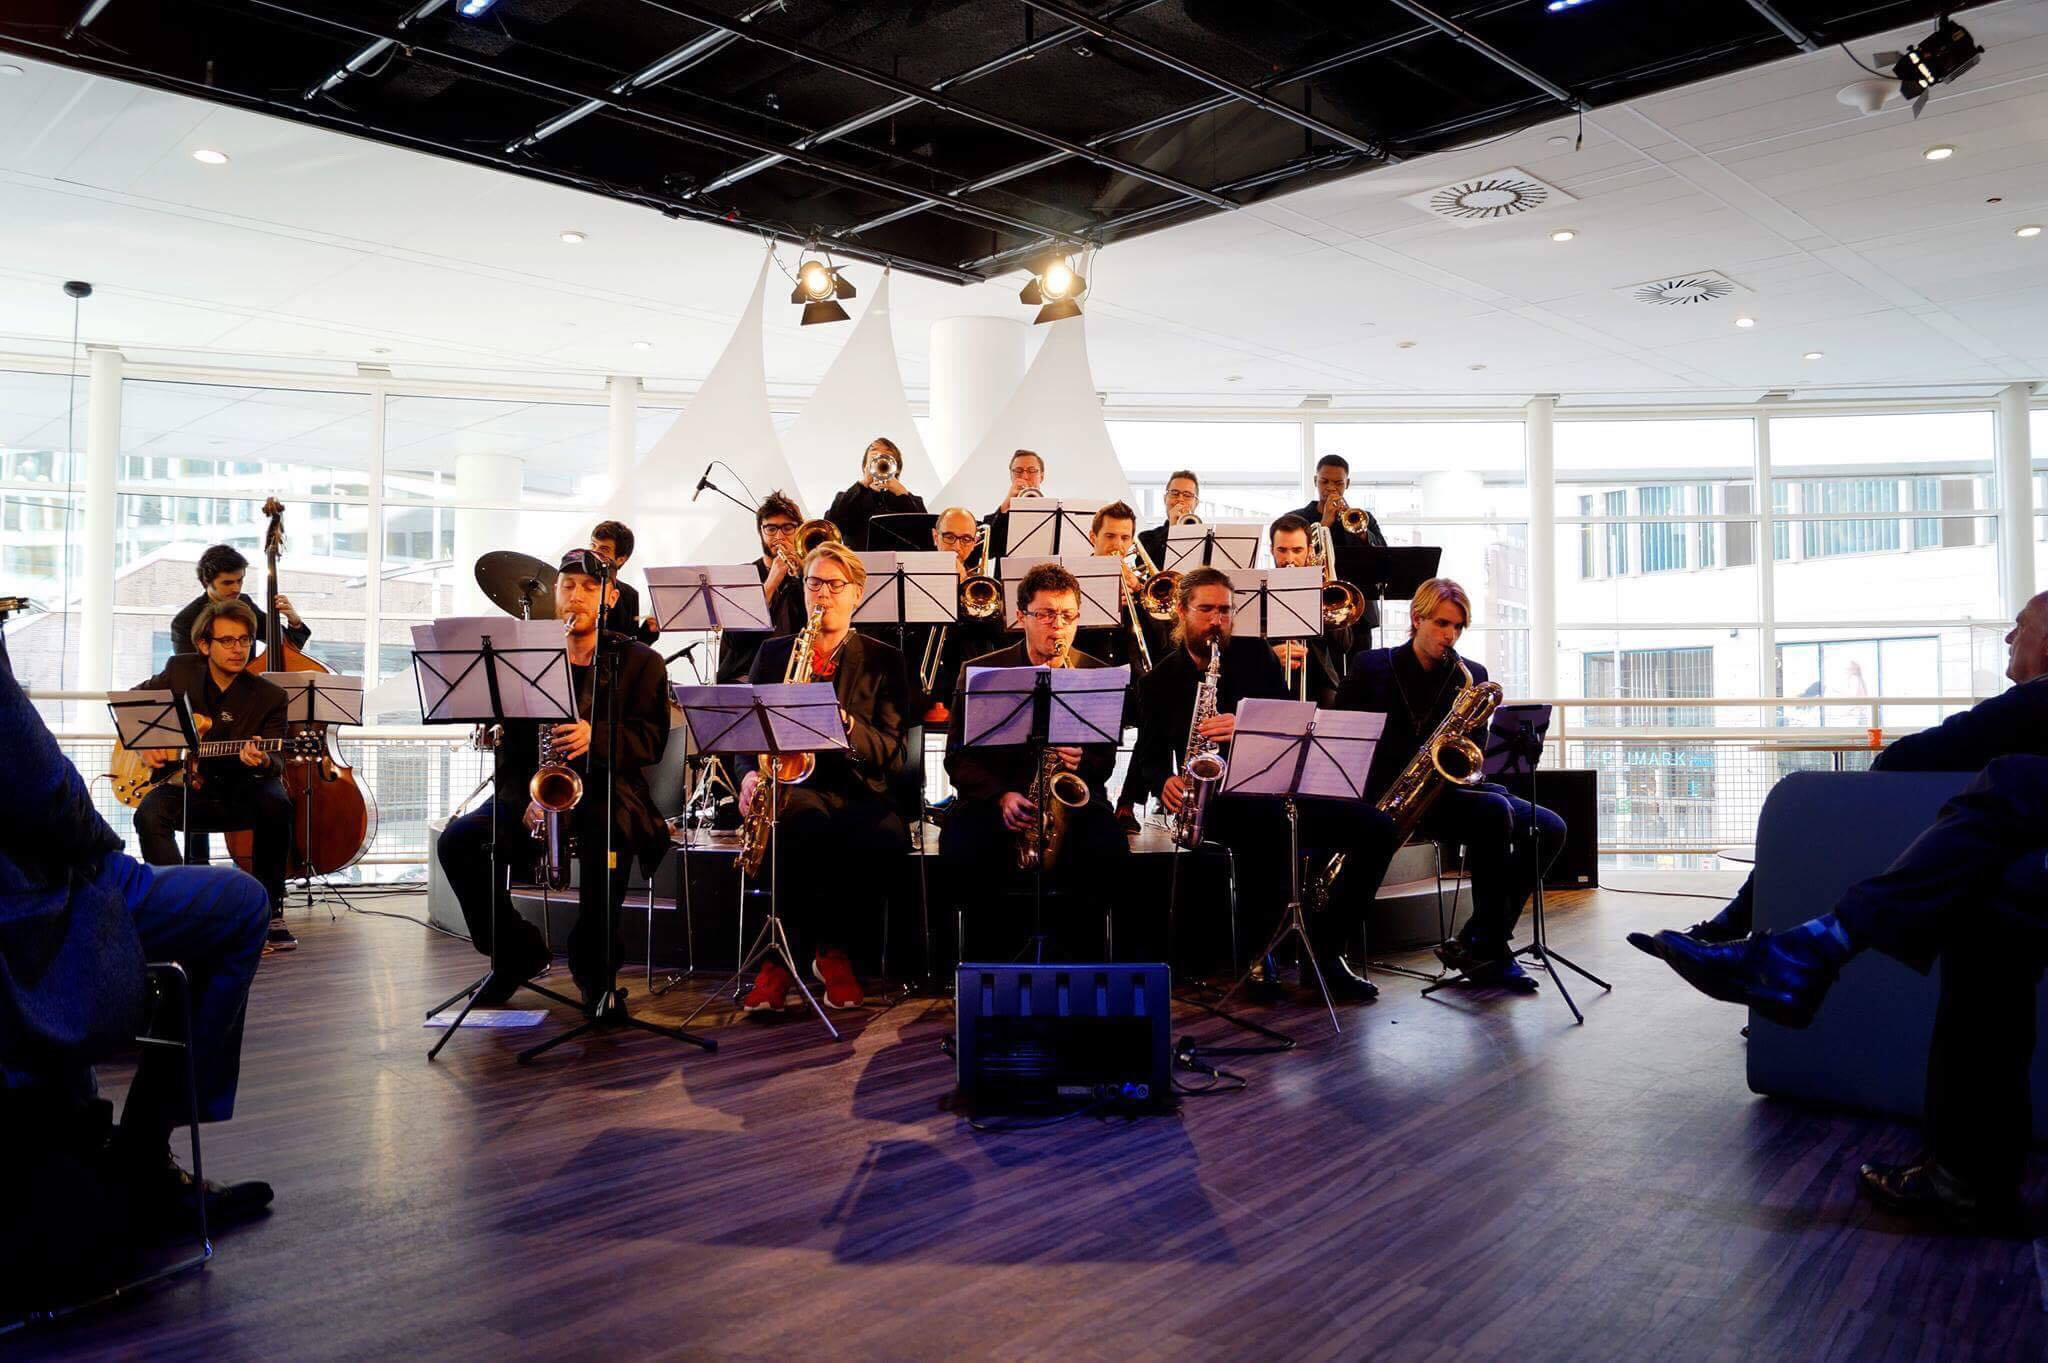 https://regentenkamer.nl/wp-content/uploads/2018/01/MB-Big-Band.jpg